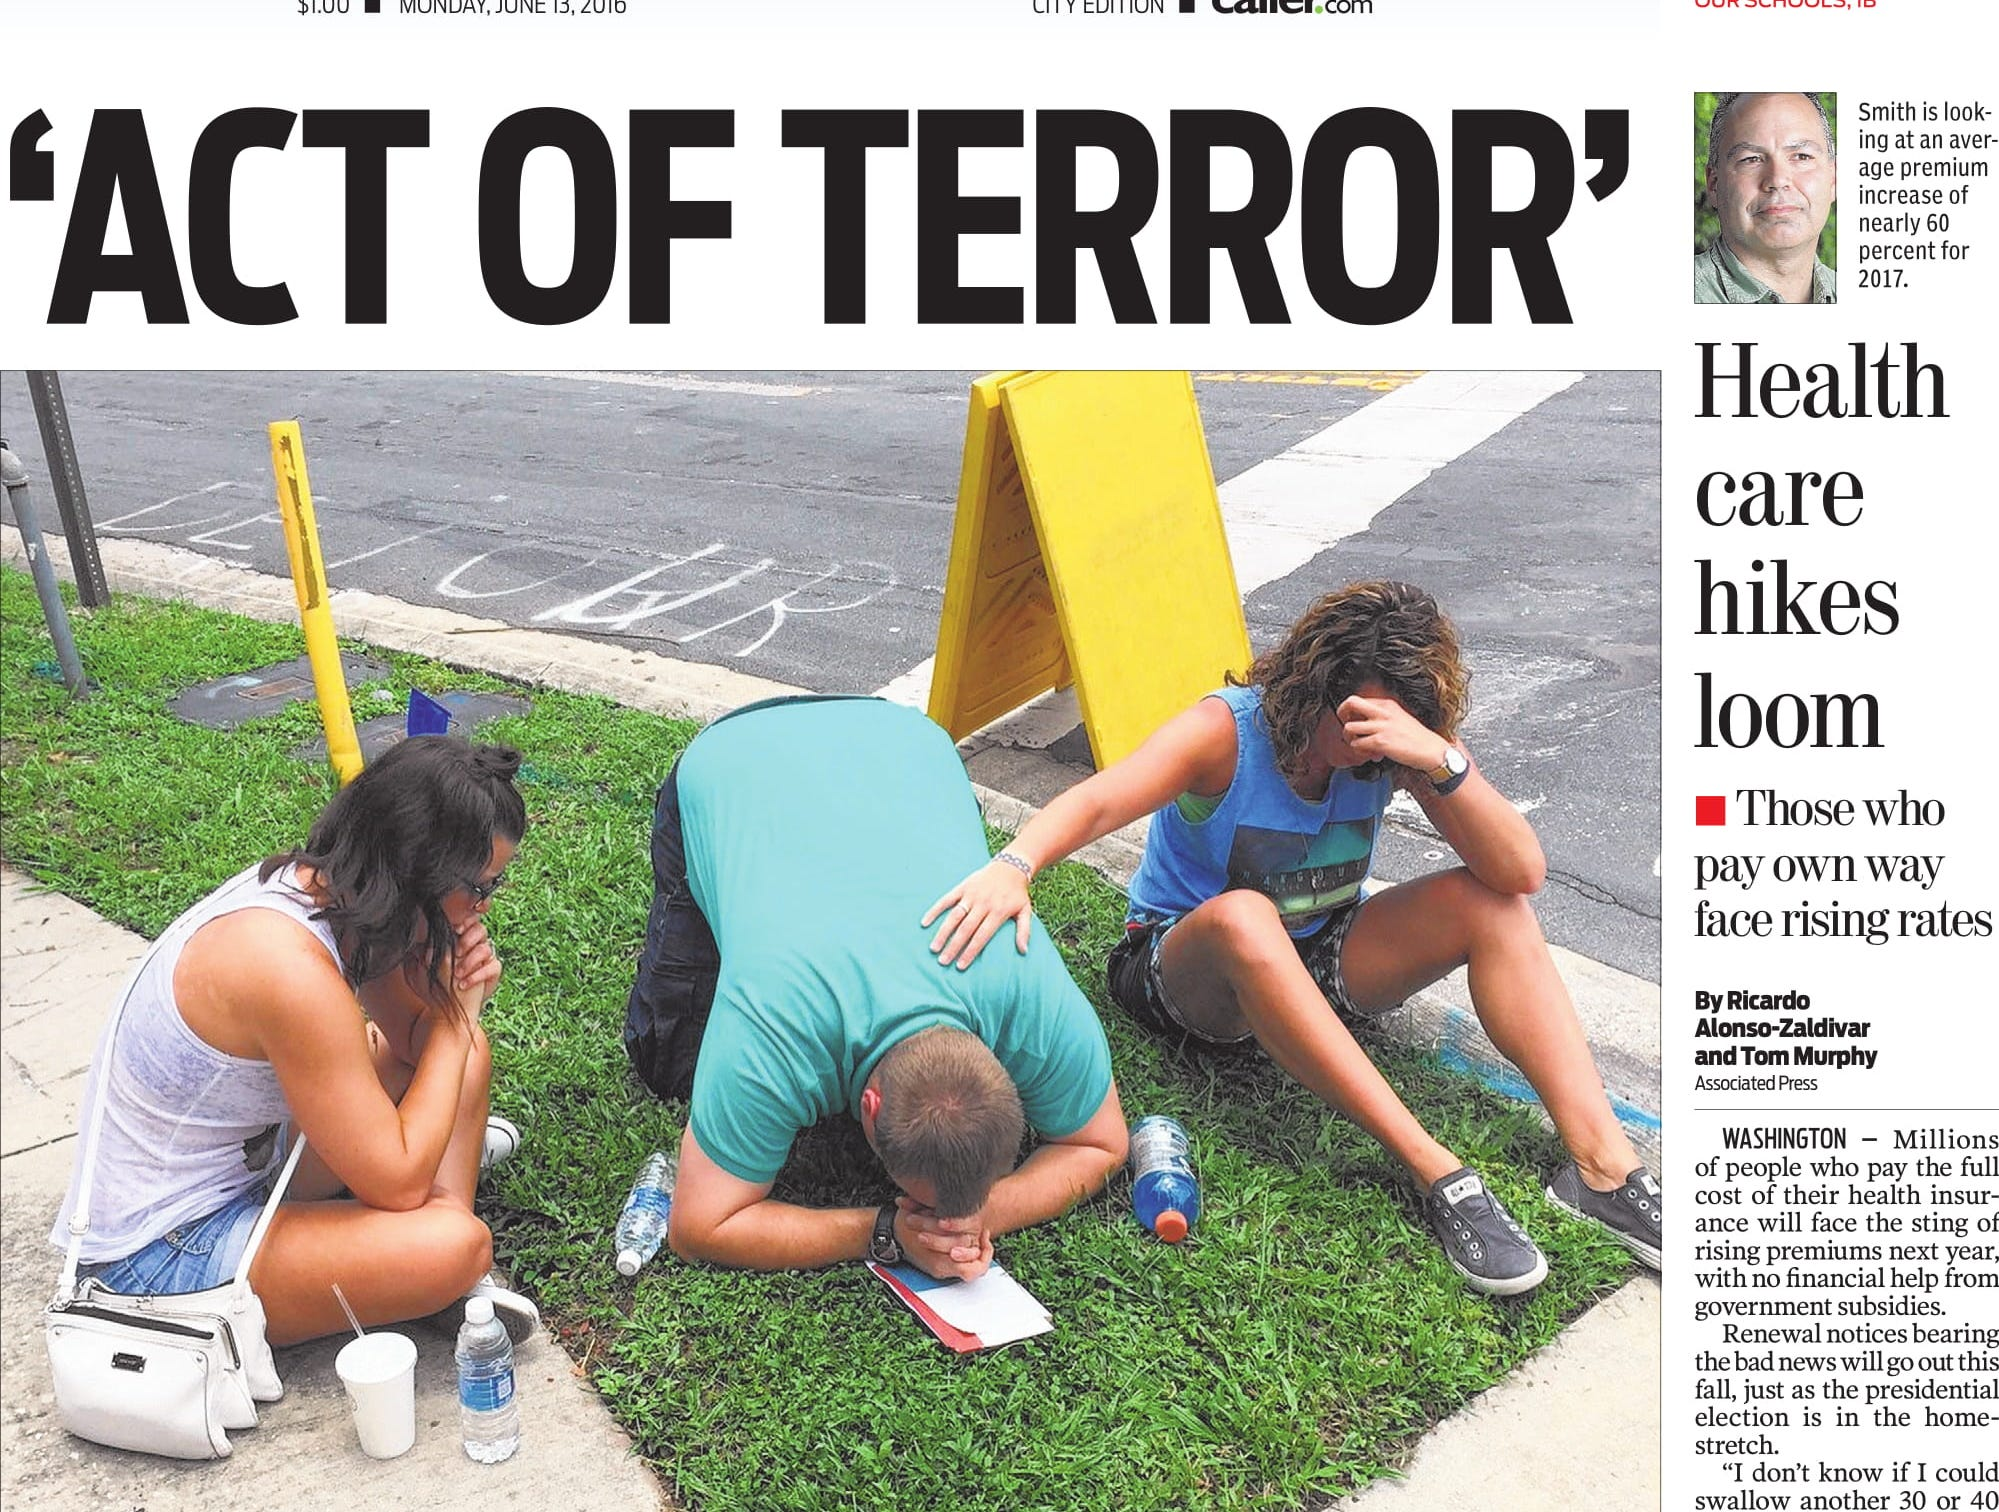 The front page of the Caller-Times on June 13, 2016 after the shooting in Orlando, Florida at a gay nightclub that left 49 dead.